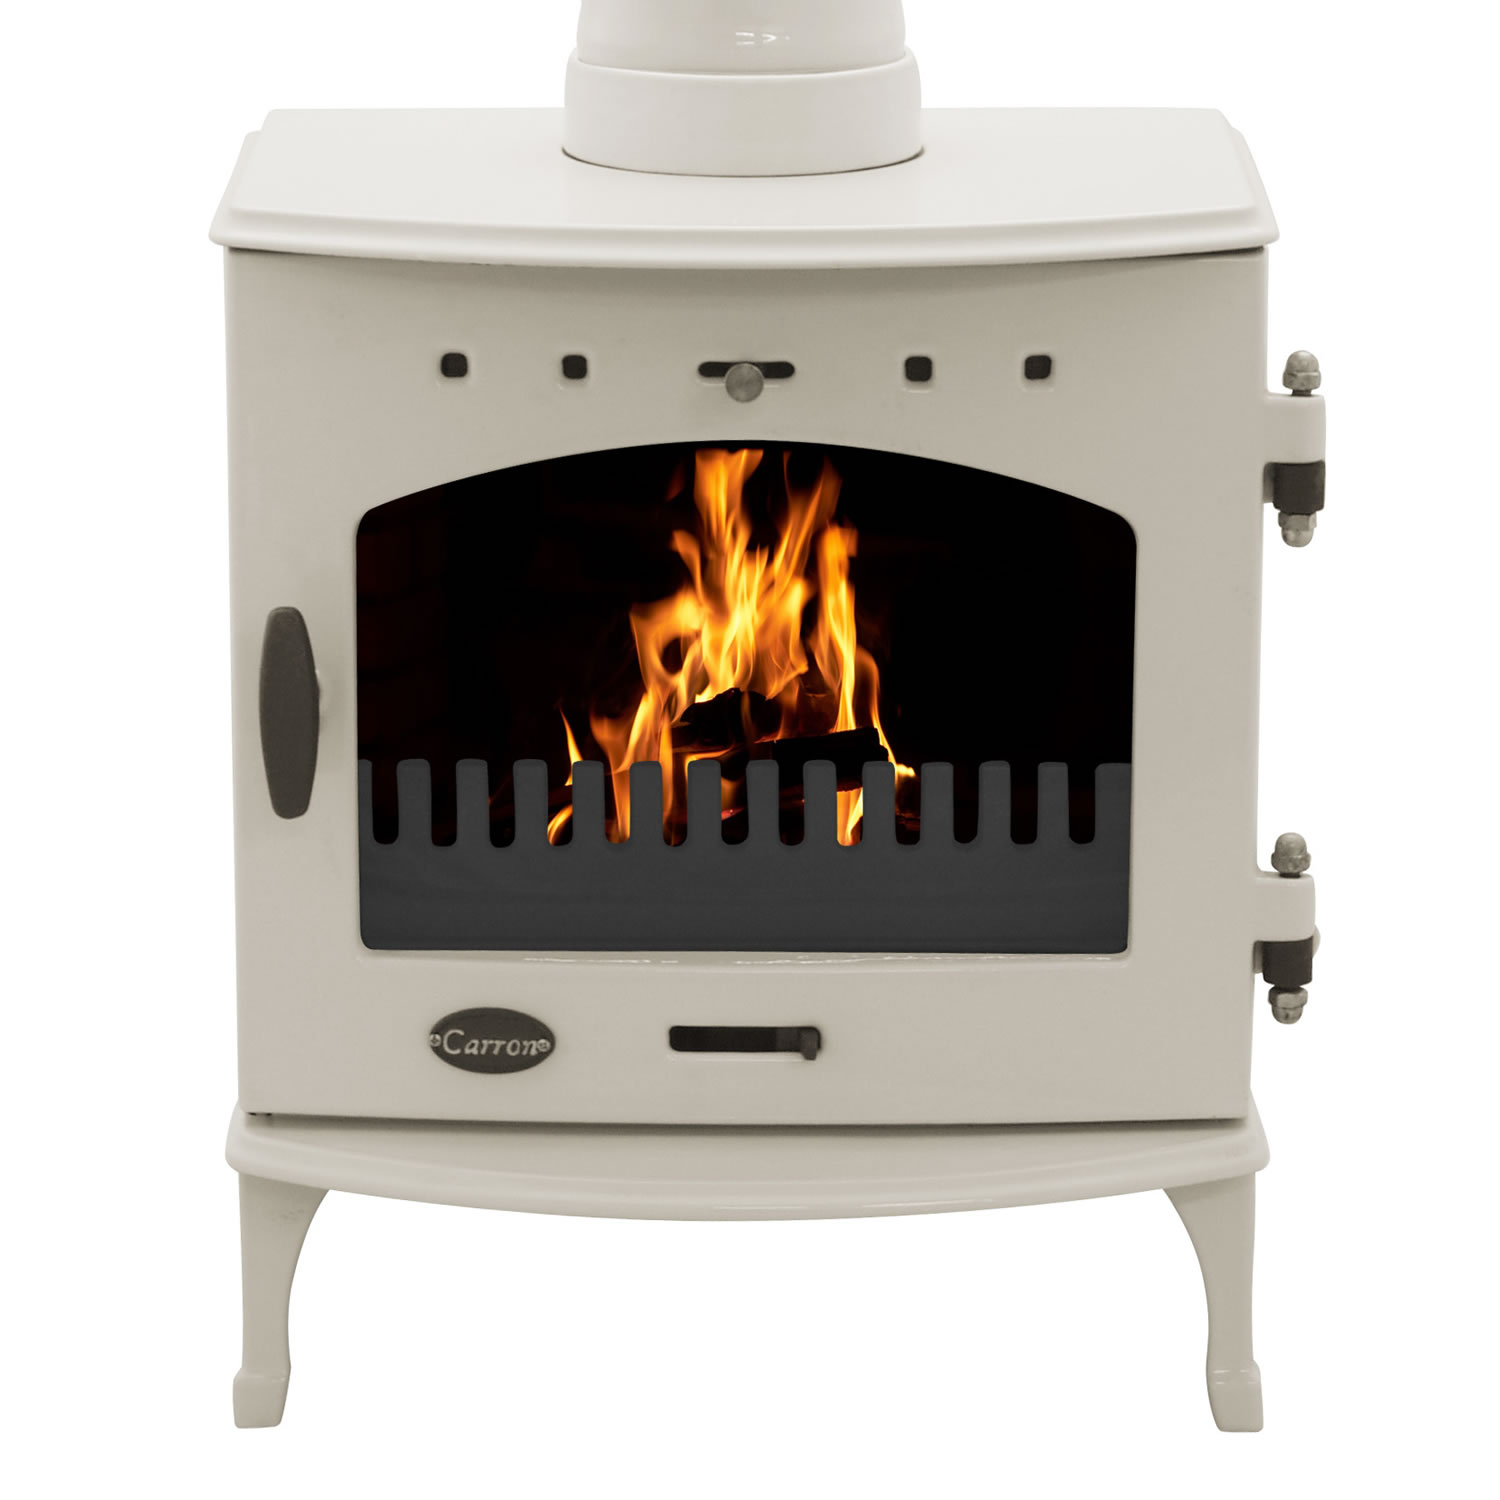 4.7KW Carron Cream Enamel Multi Fuel Stove